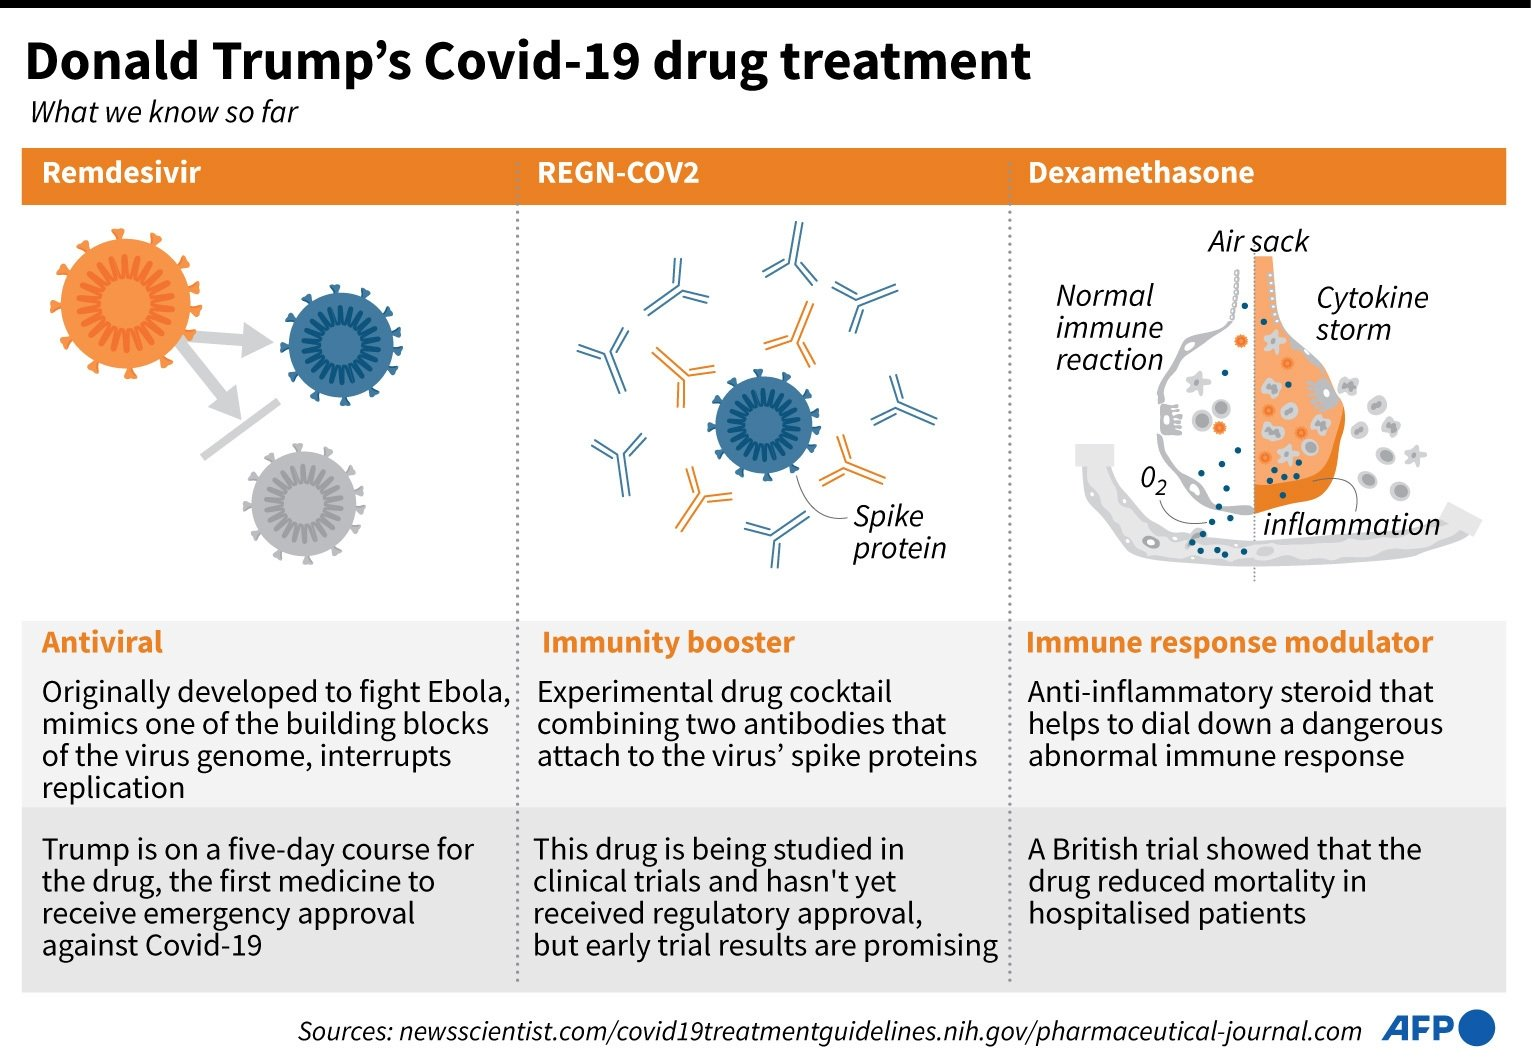 Graphic on what we know about Donald Trump's drug treatment during the course of his coronavirus infection so far.